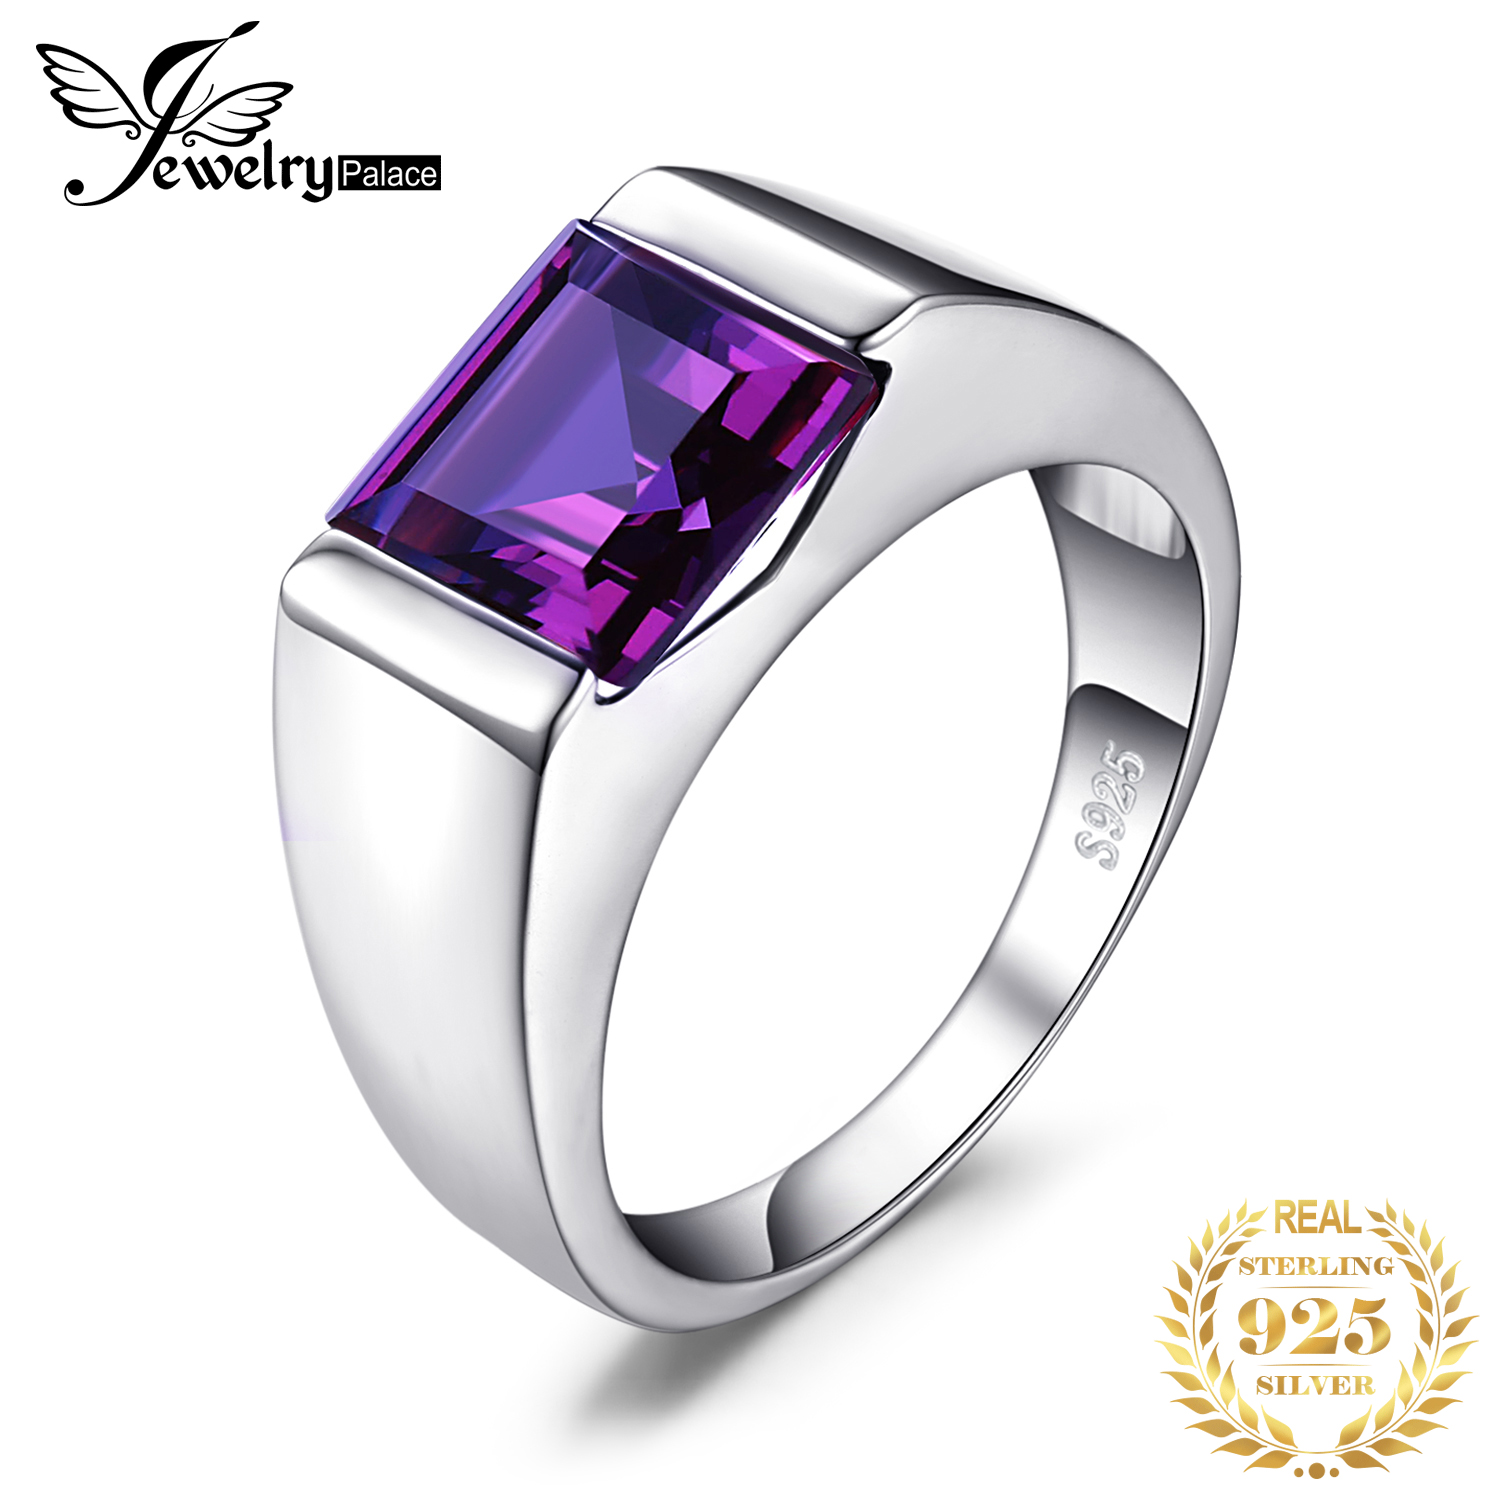 JewelryPalace Men's Square 3.3ct Created Alexandrite Sapphire 925 Sterling Sliver Ring For Men Fine Jerwelry Fashion Style